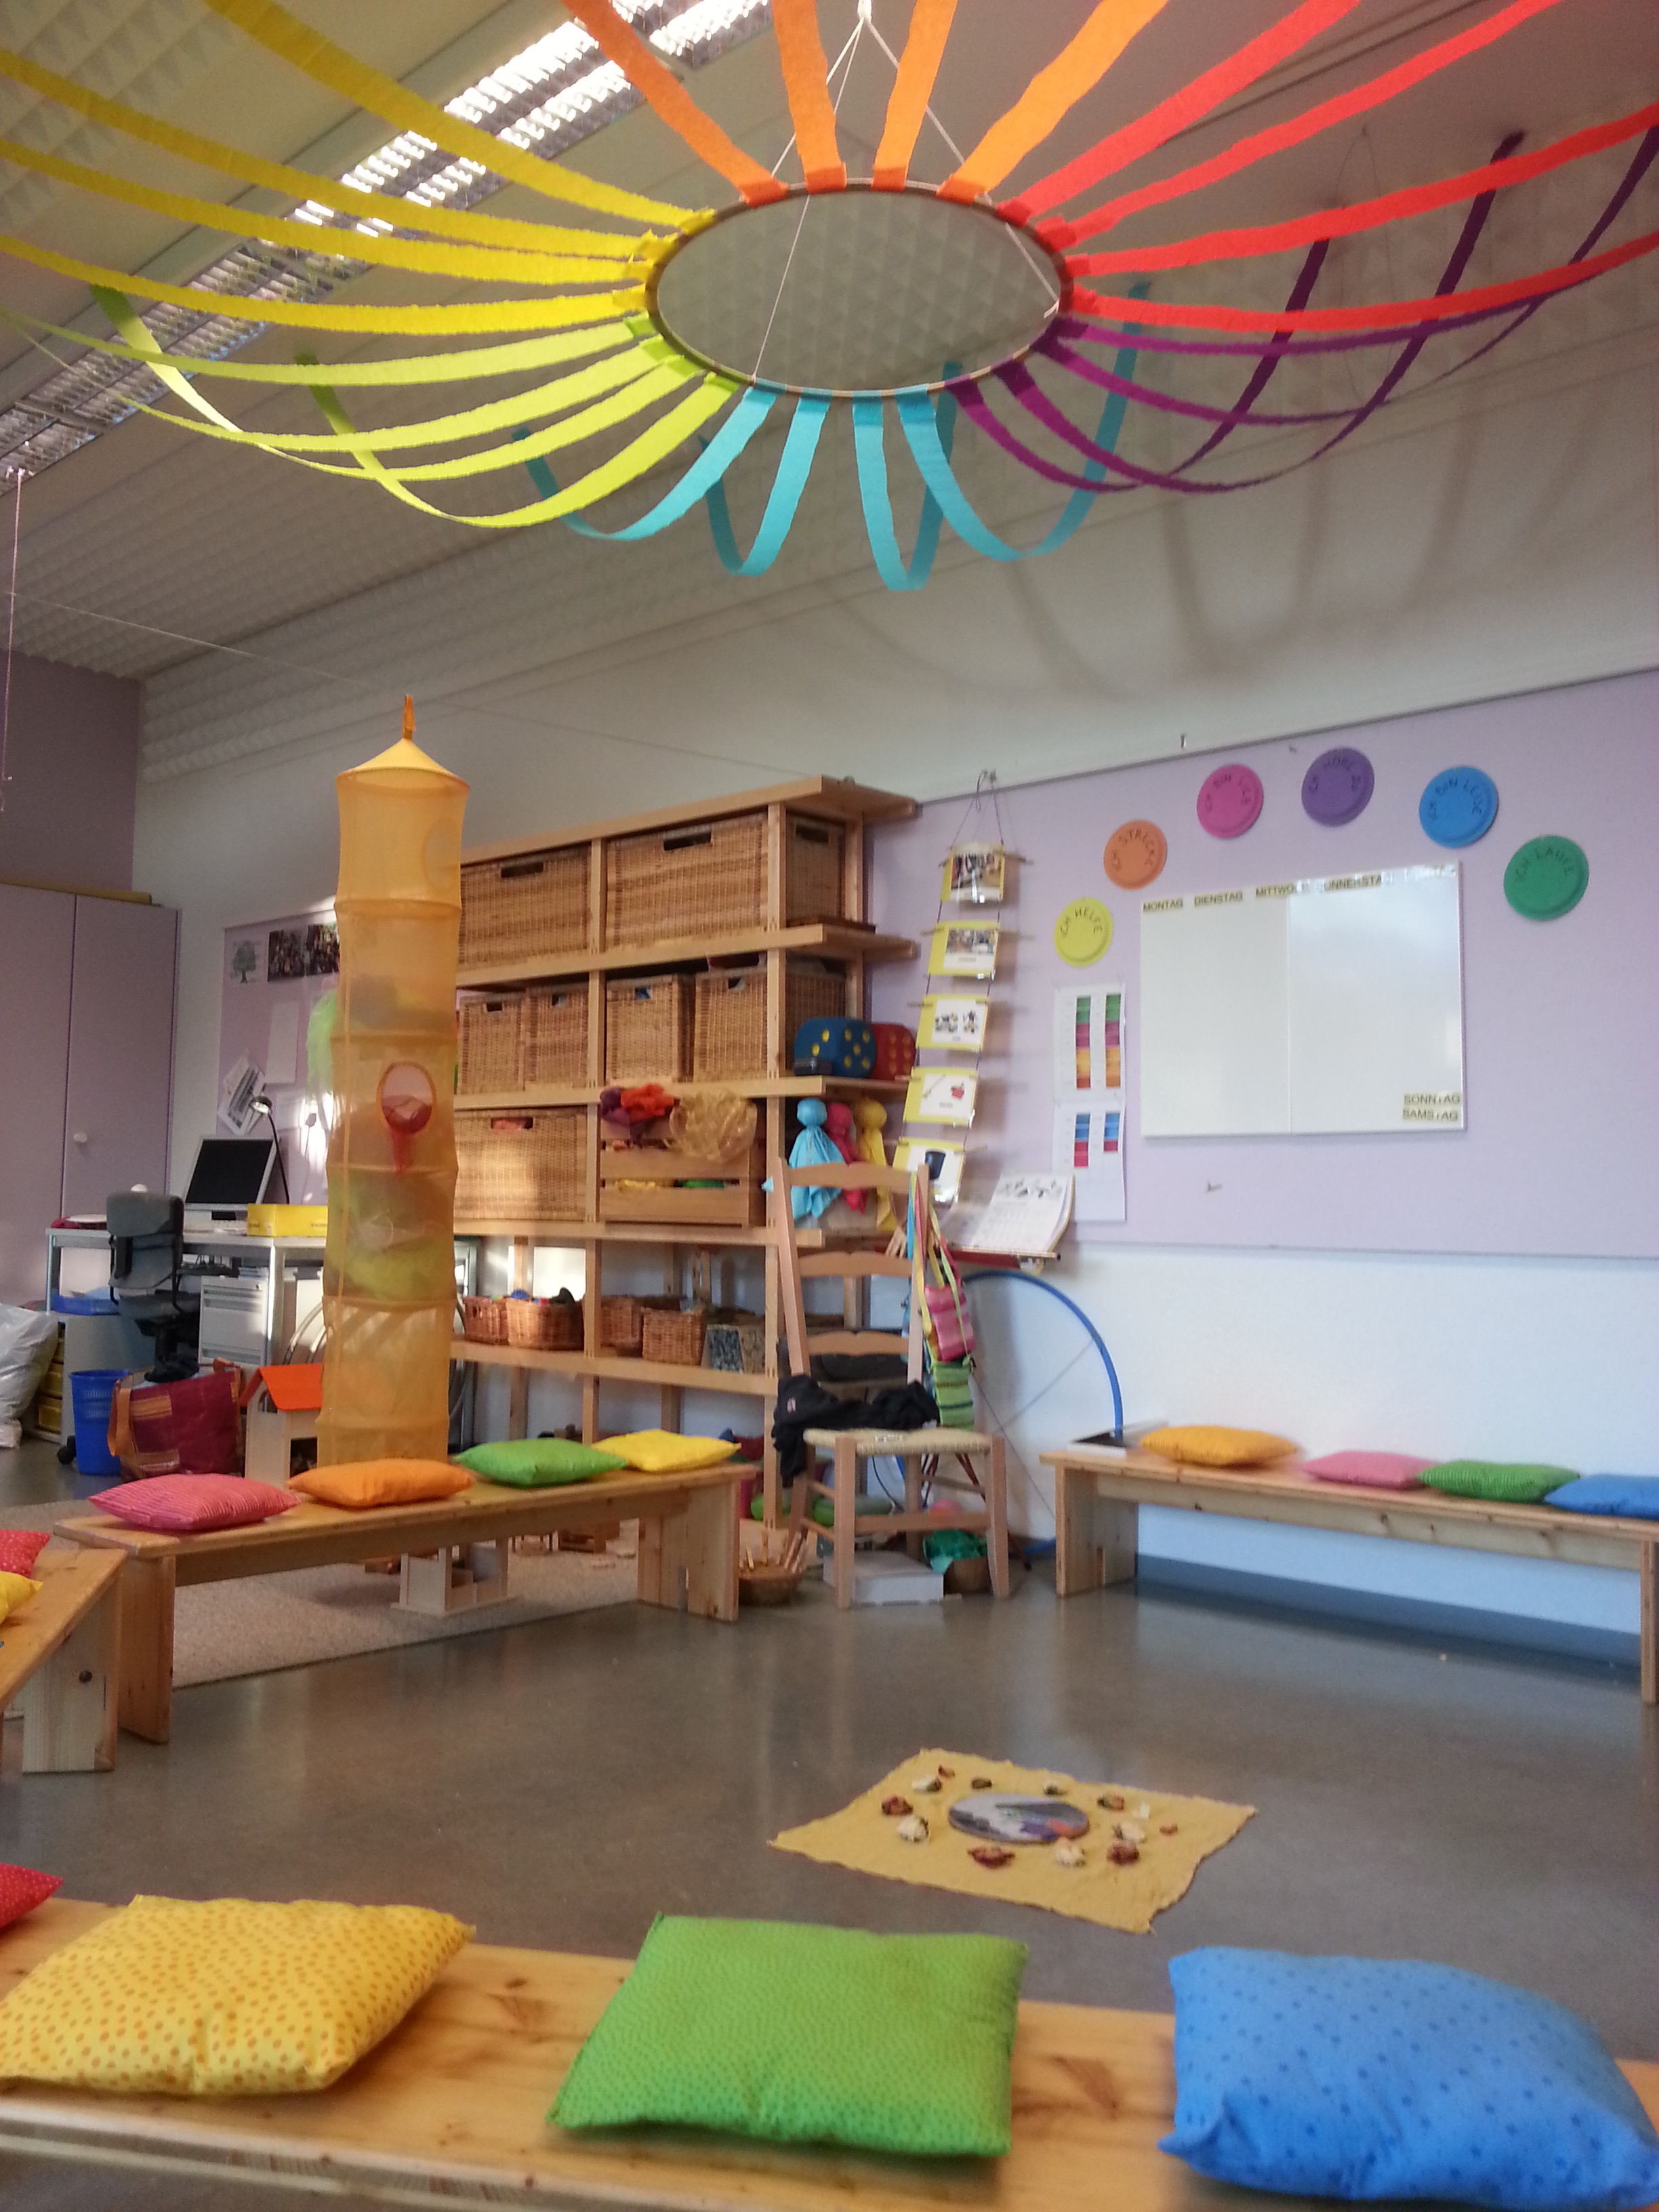 Classroom Ceiling Decoration : Share